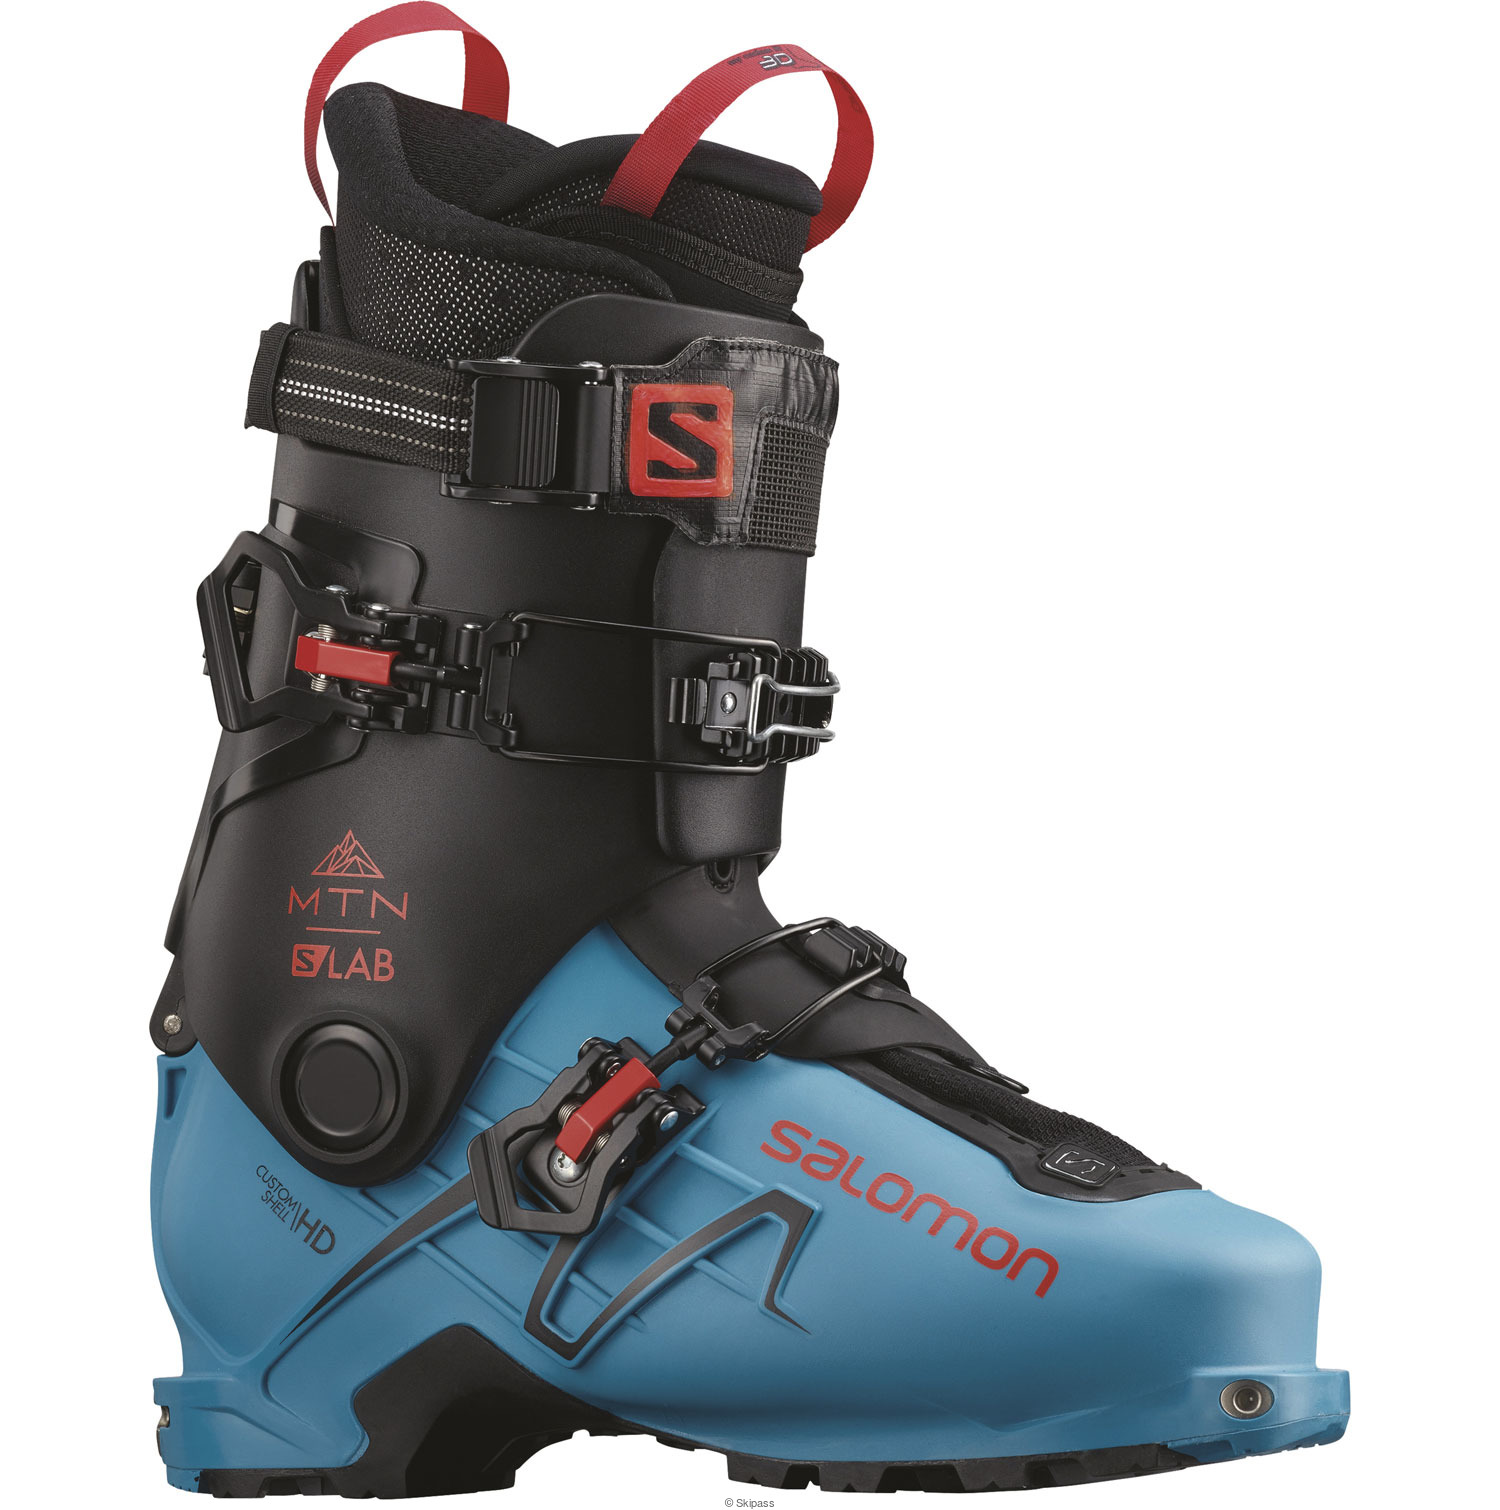 Test chaussures de ski Salomon X Lab Medium, chaussures ski